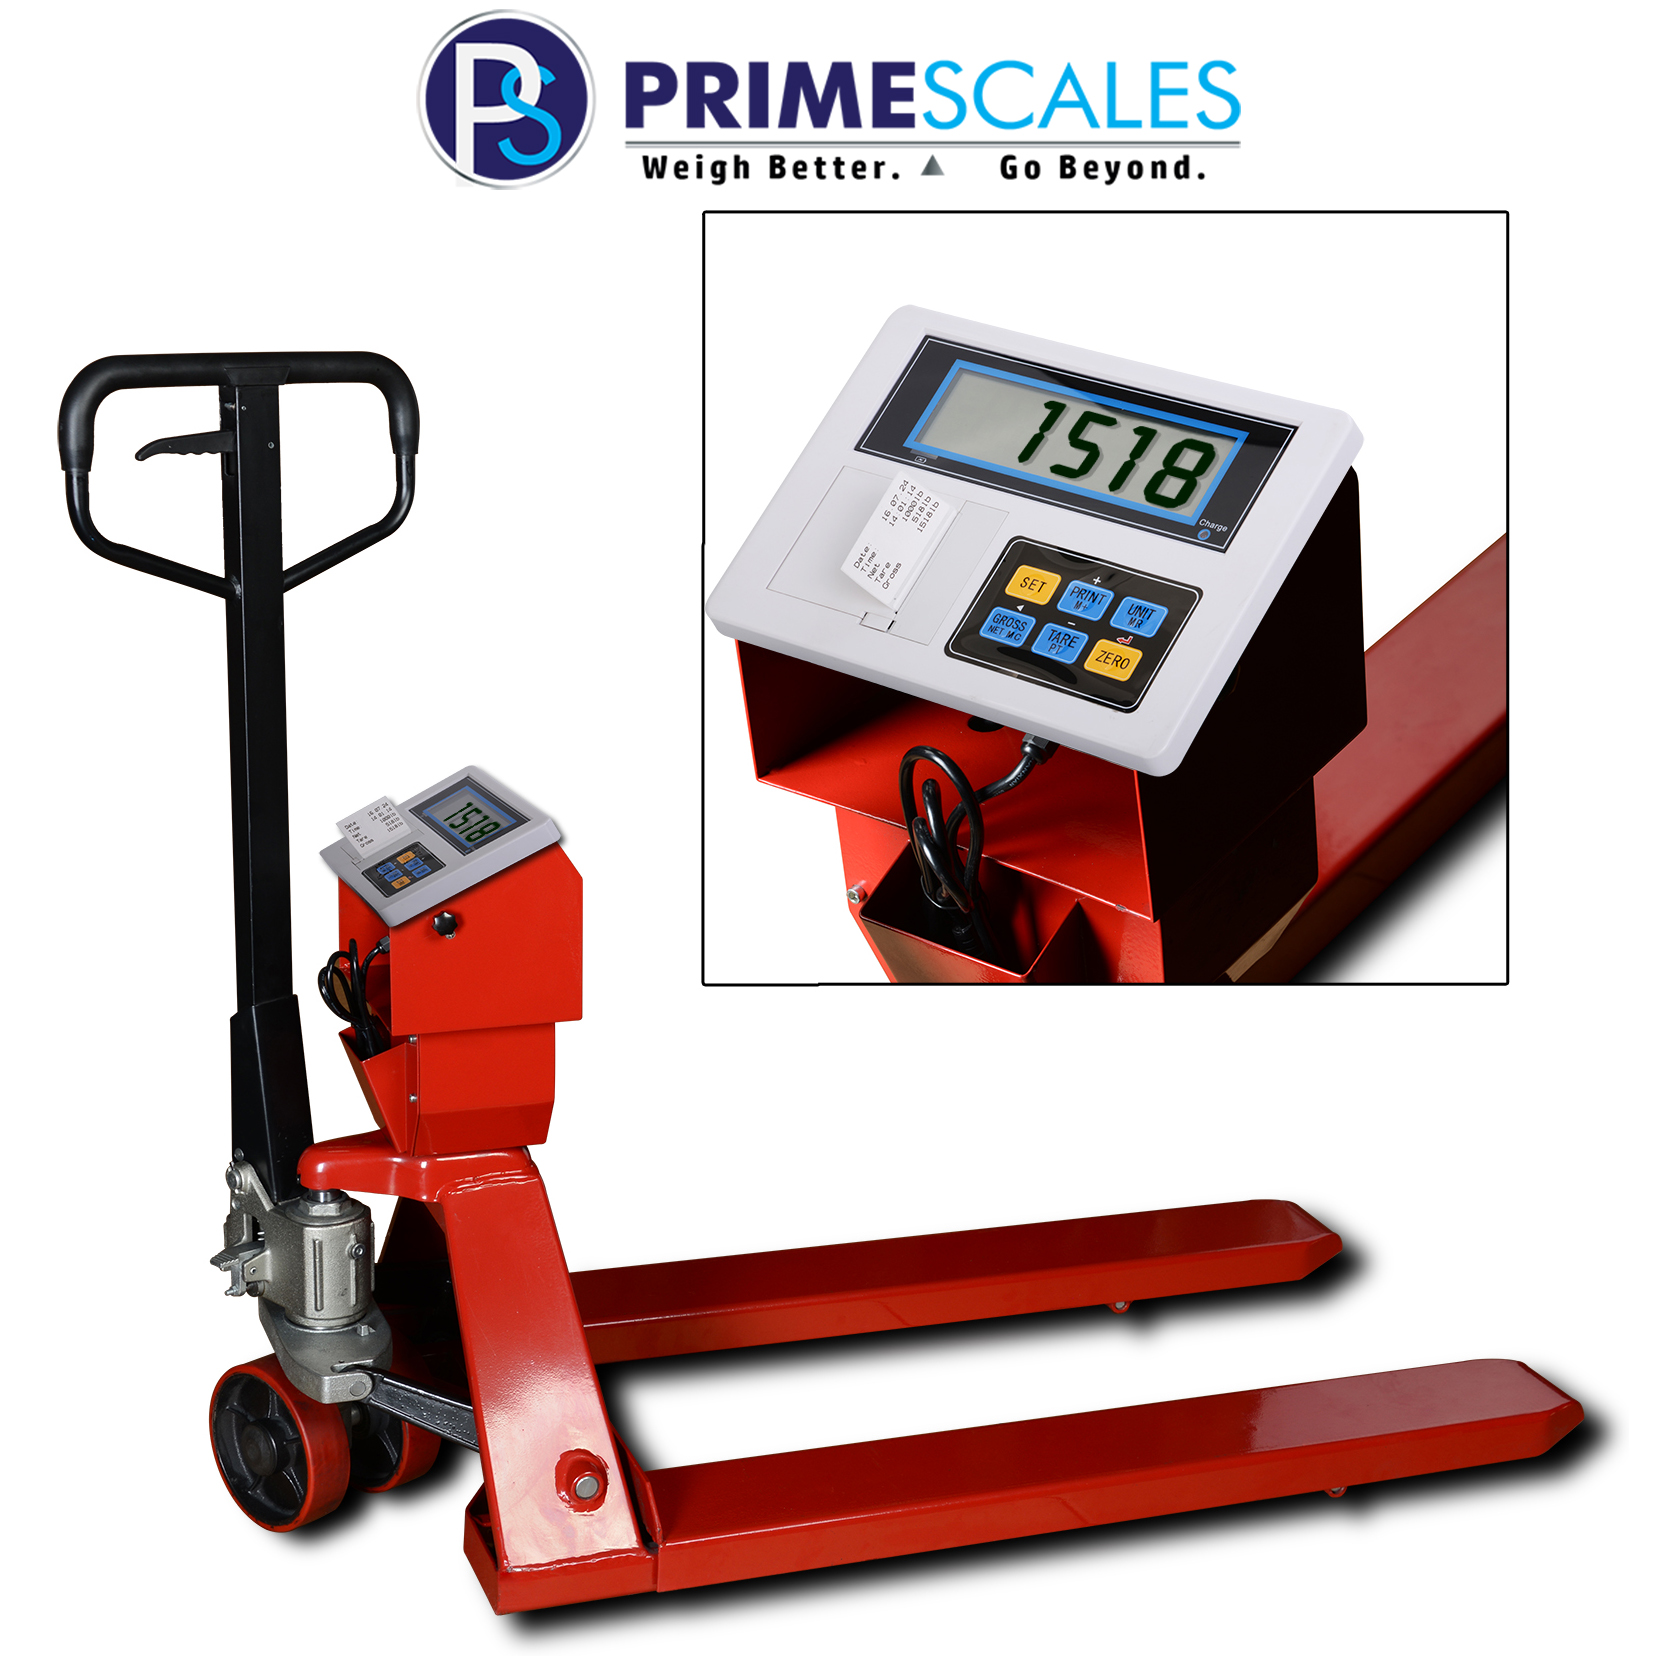 Prime Scales PS-5000PJP Pallet Truck / Pallet Jack Scale with PS-IN105P Label Printing Indicator Specially Designed for standard US Pallets